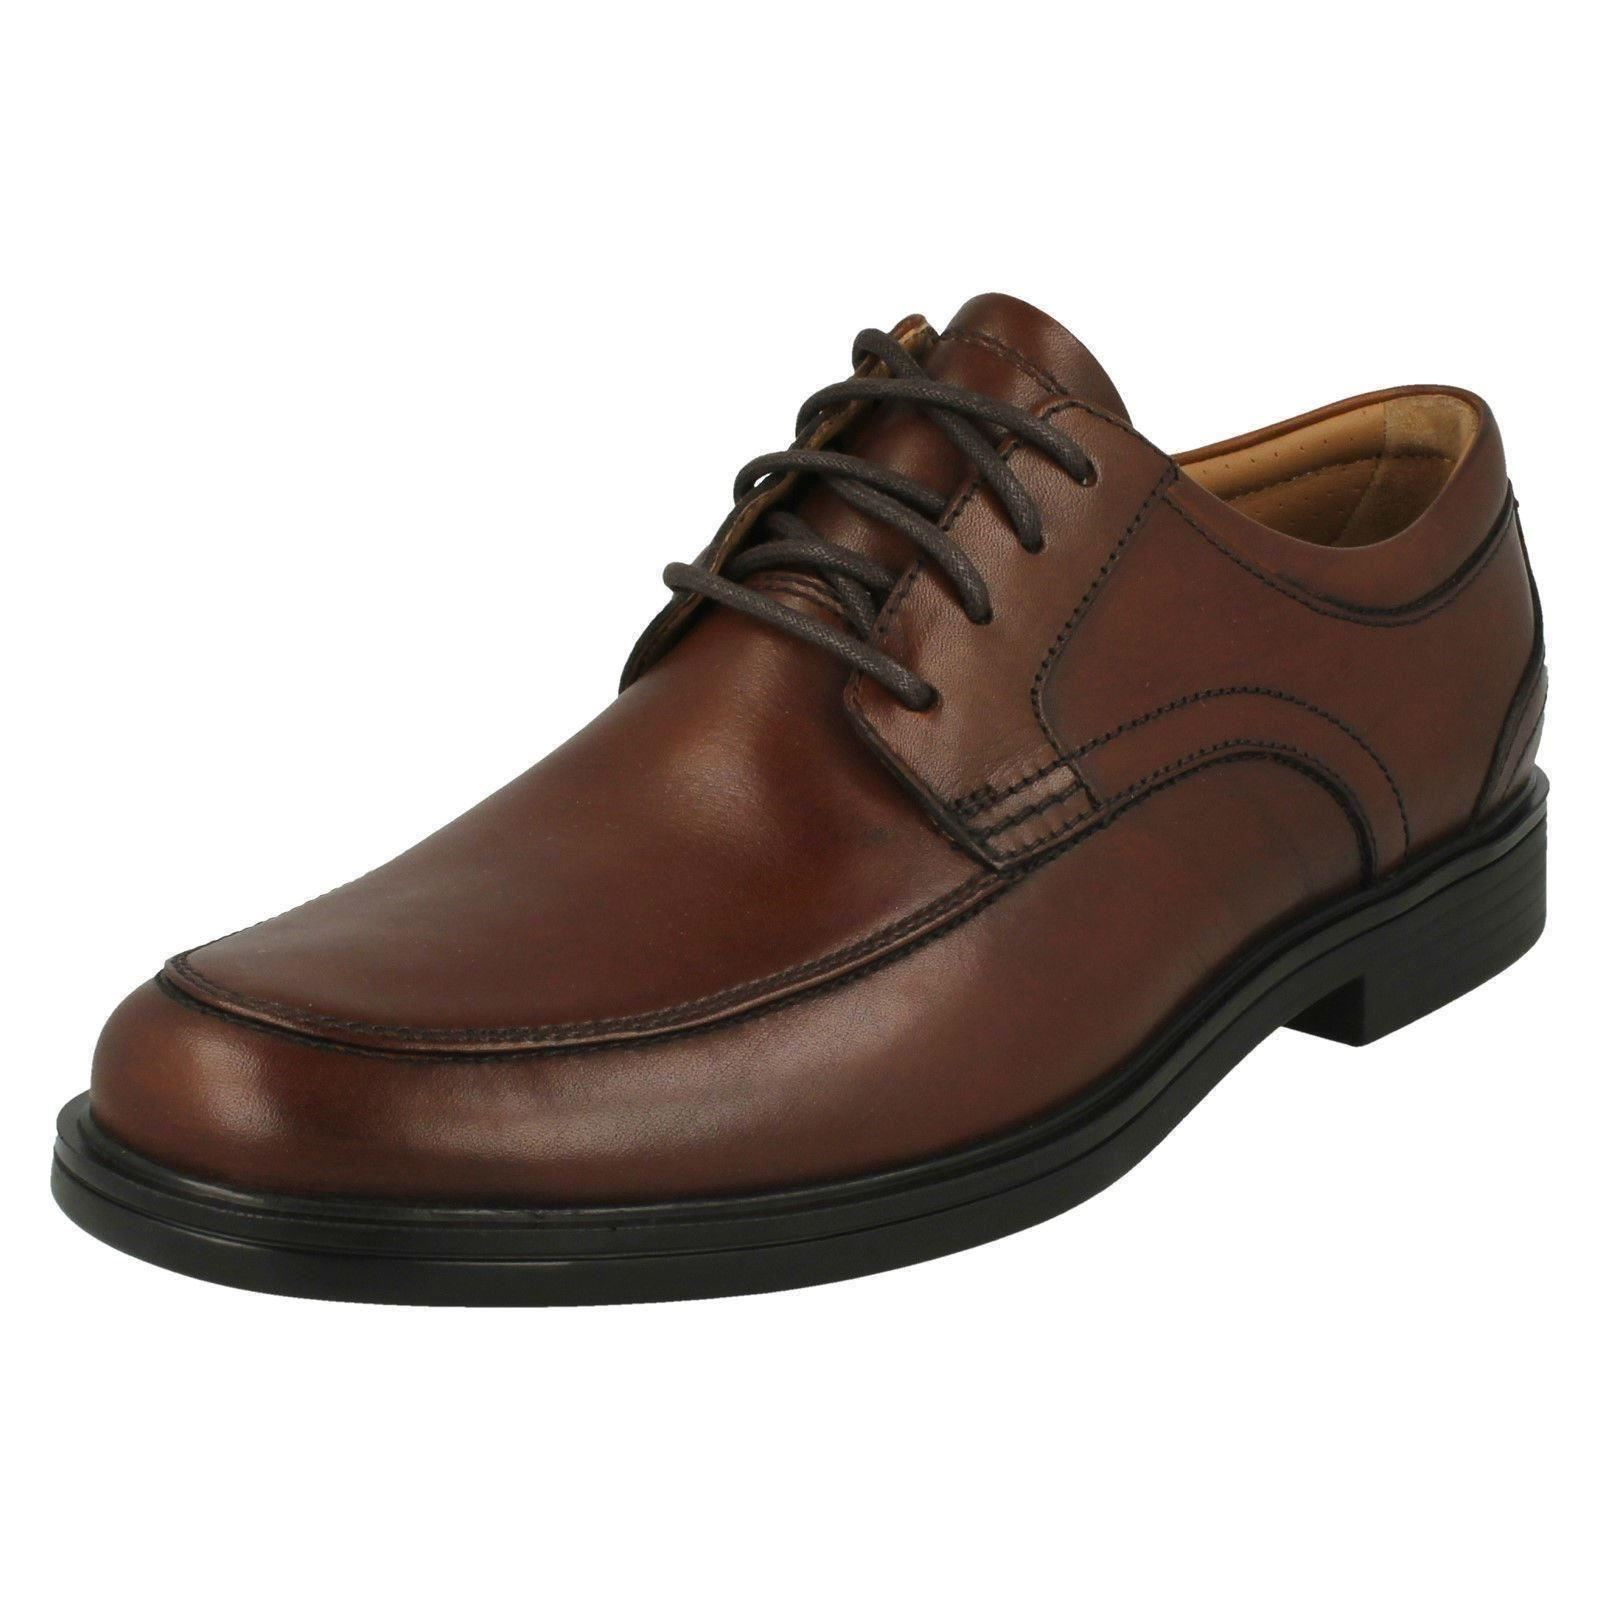 6bf9bd6aa19 Mens Clarks Smart Lace up Shoes Un Aldric Park UK 8 Tan (brown) G. About  this product. Picture 1 of 10  Picture 2 of 10 ...